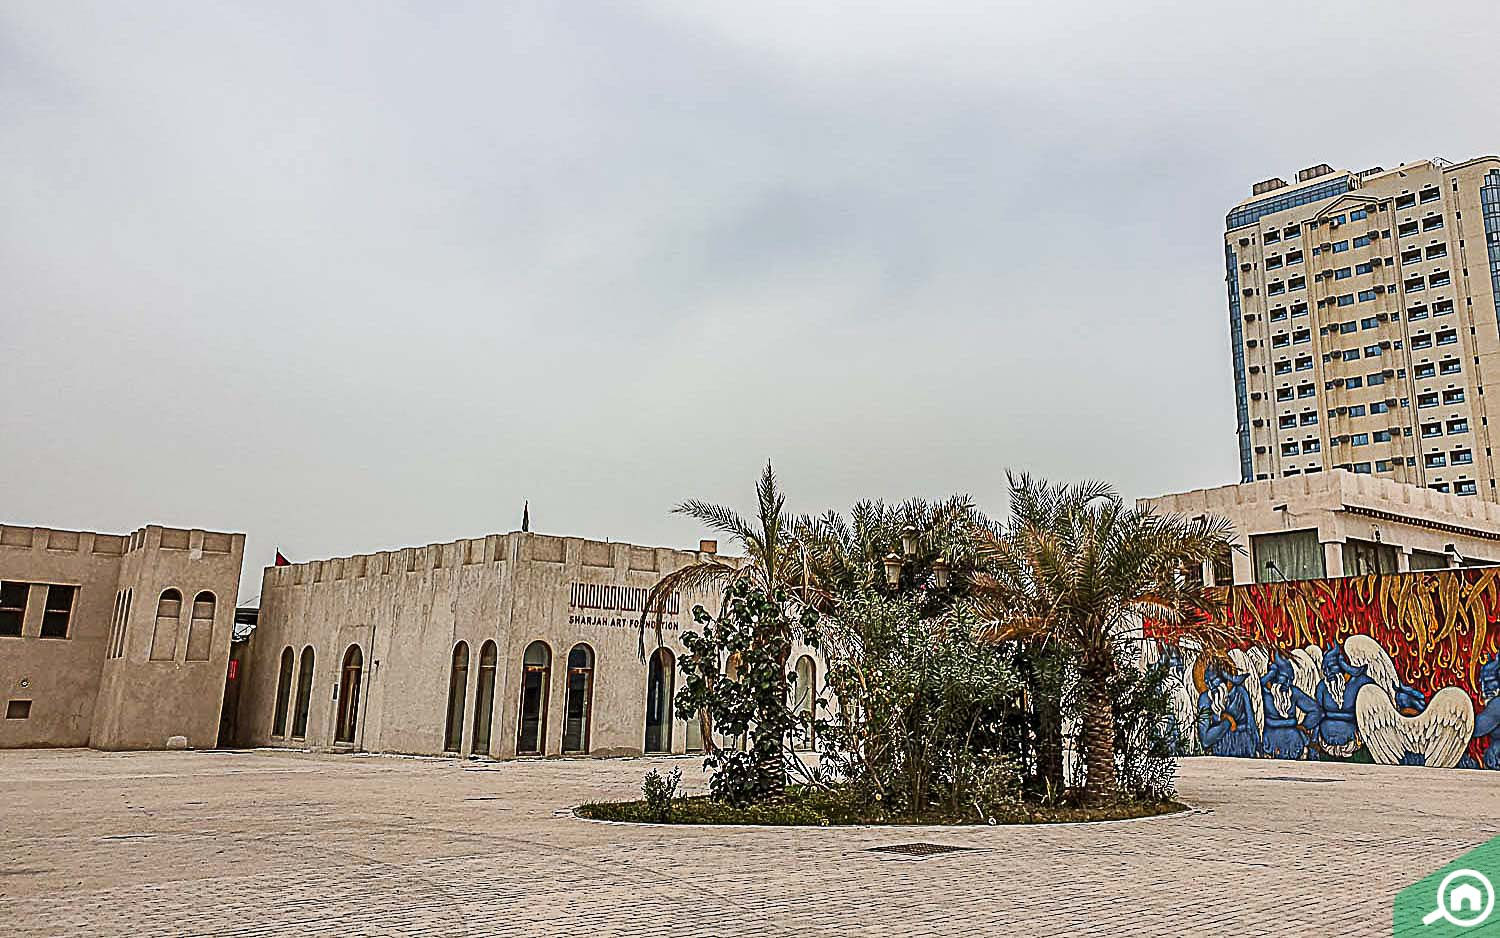 Sharjah Art Foundation one of the best things to do in Sharjah